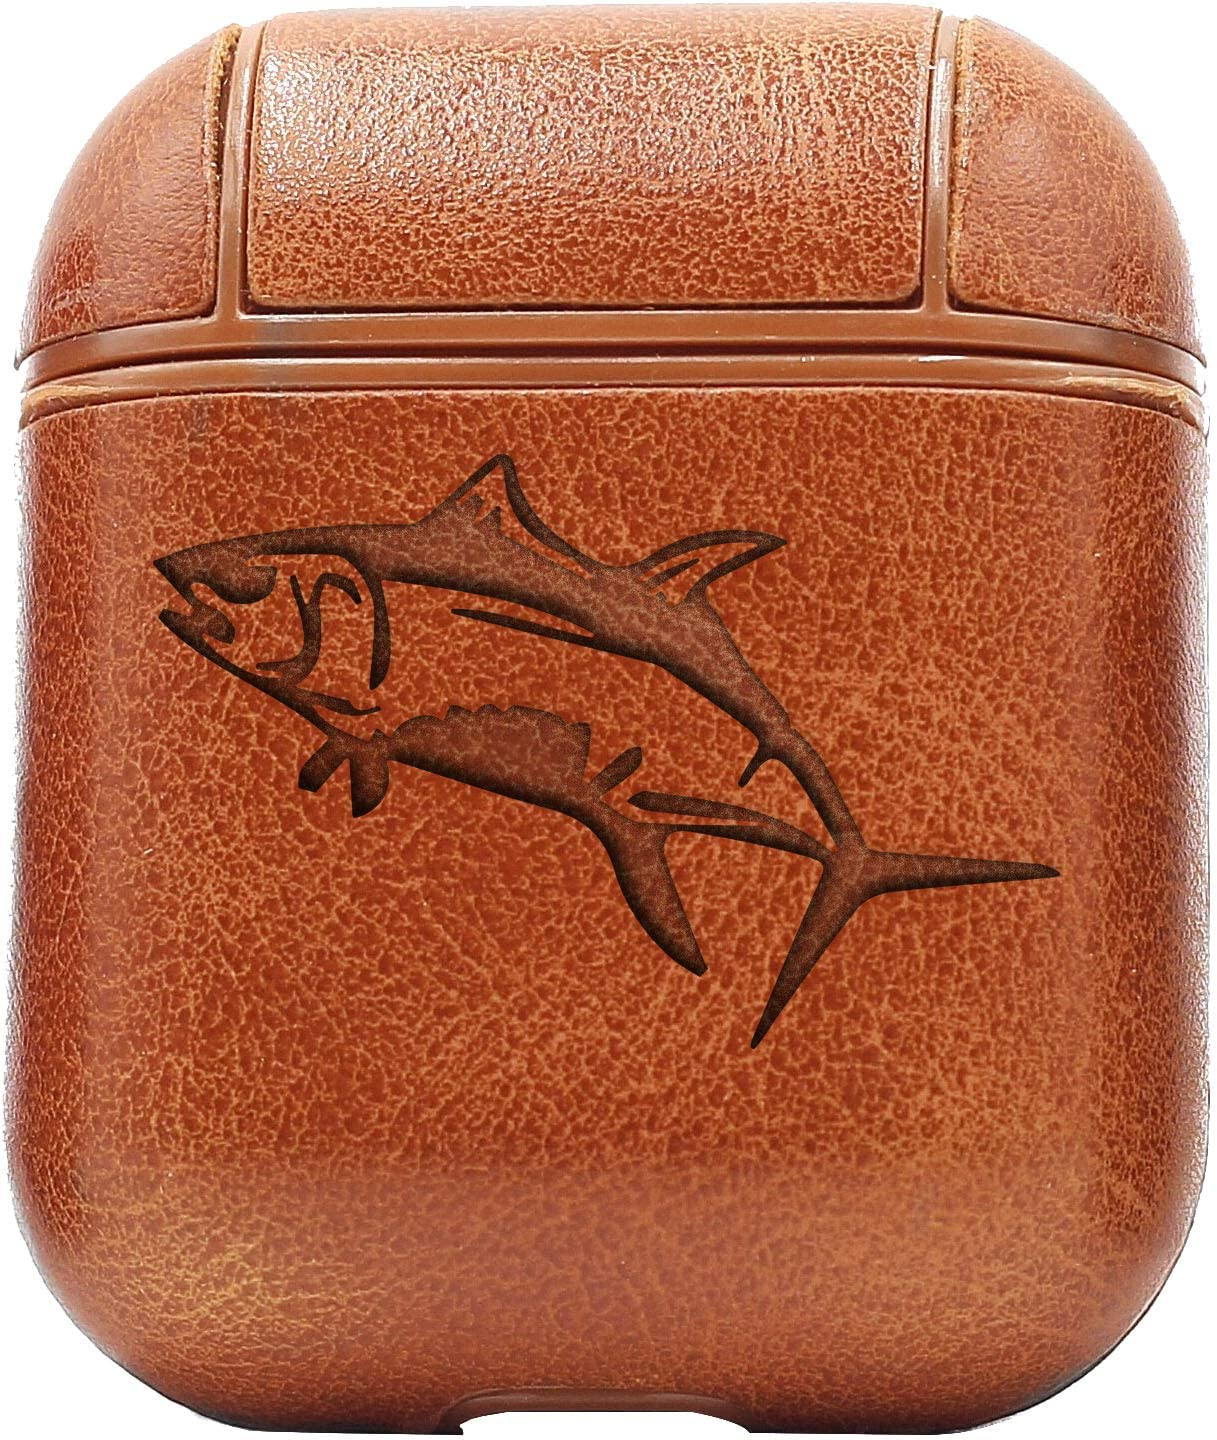 Tuna Fish Leather Wallet BLACK or Brown Fishing Gift